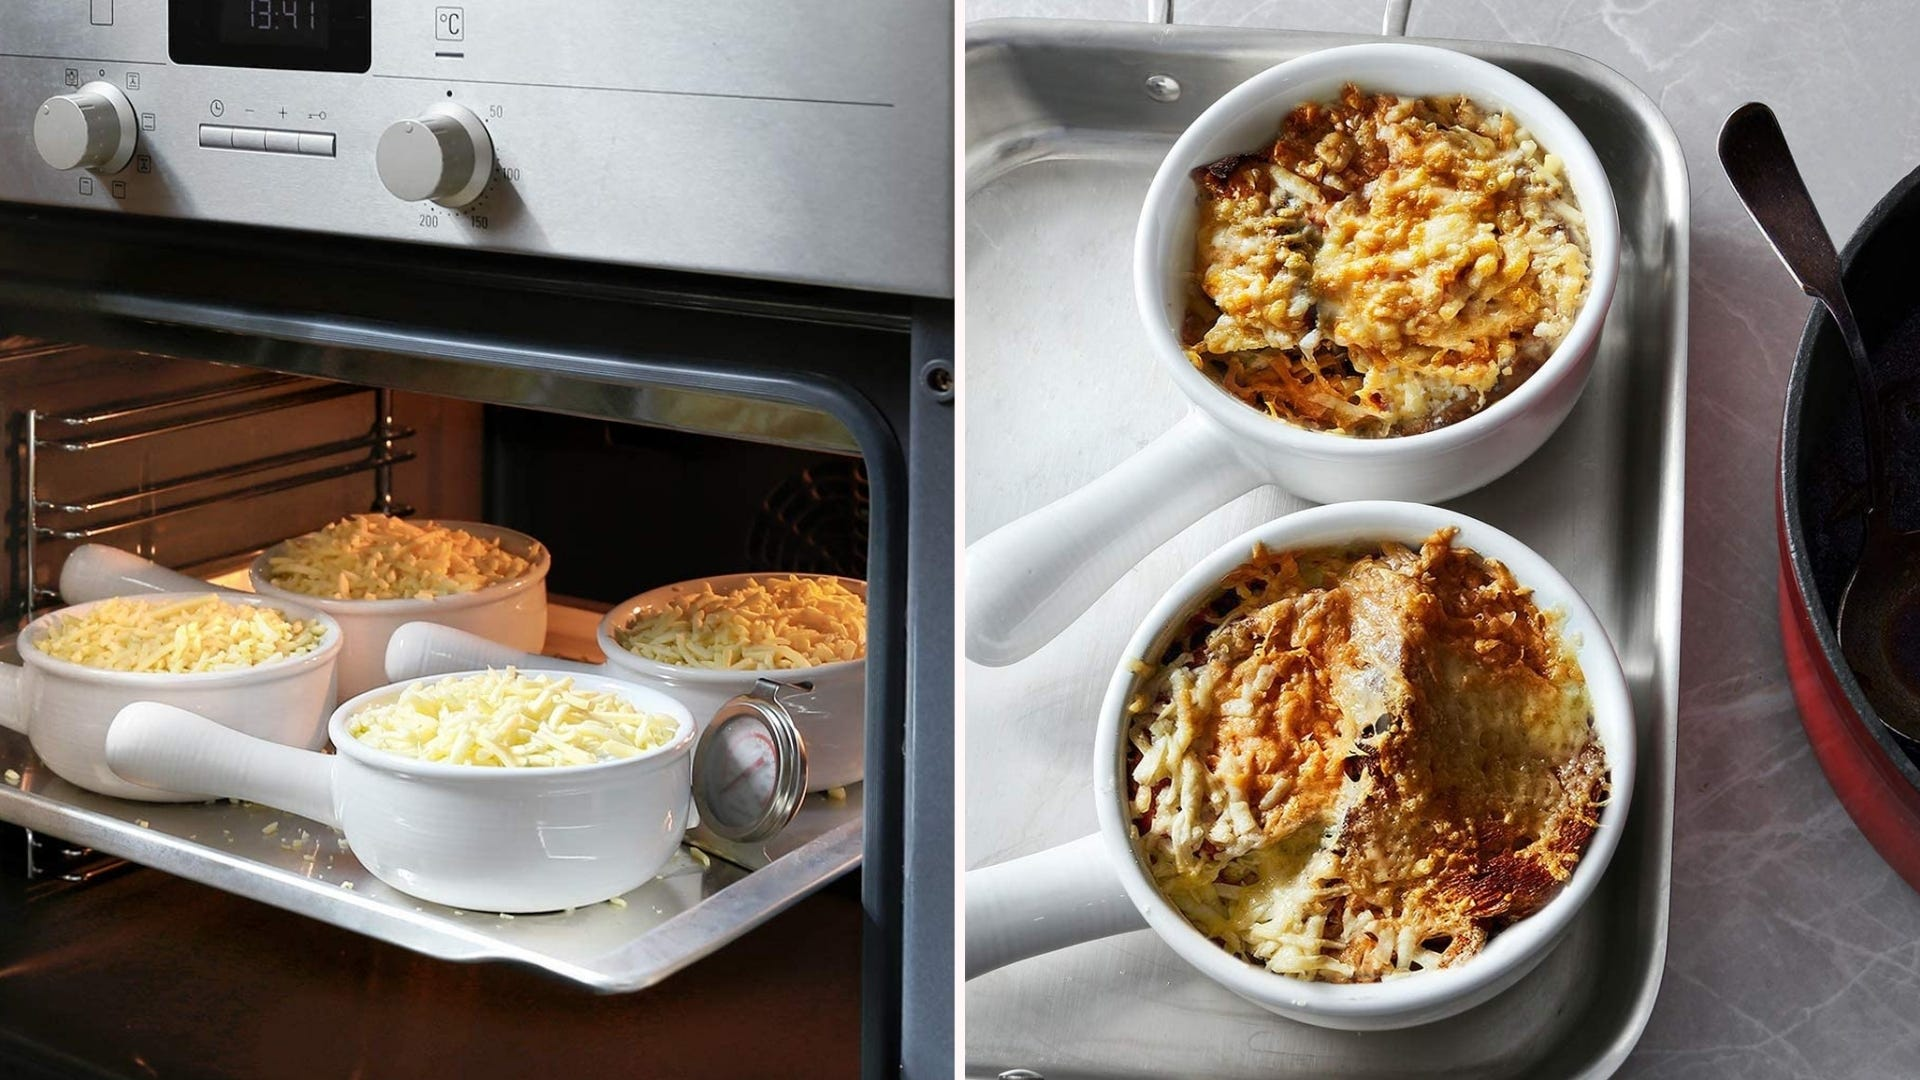 Two images displaying the Tauci French onion crocks.